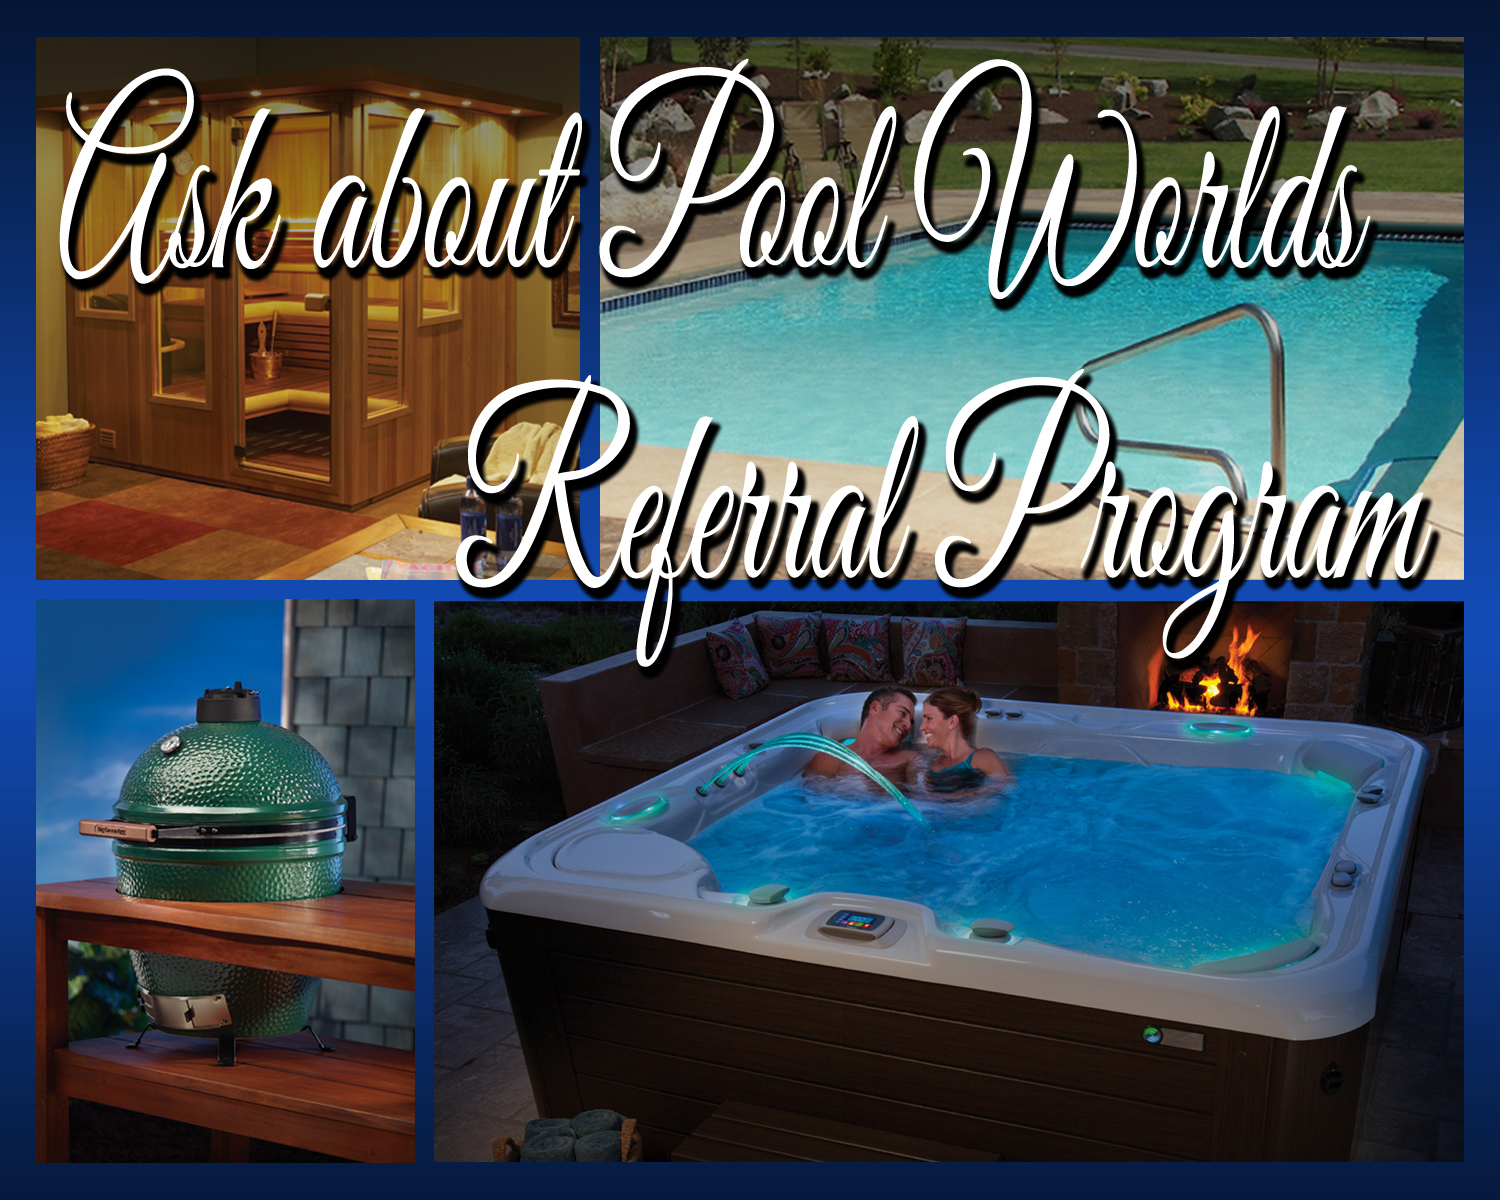 Have you ever heard about Pool Worlds referral program?